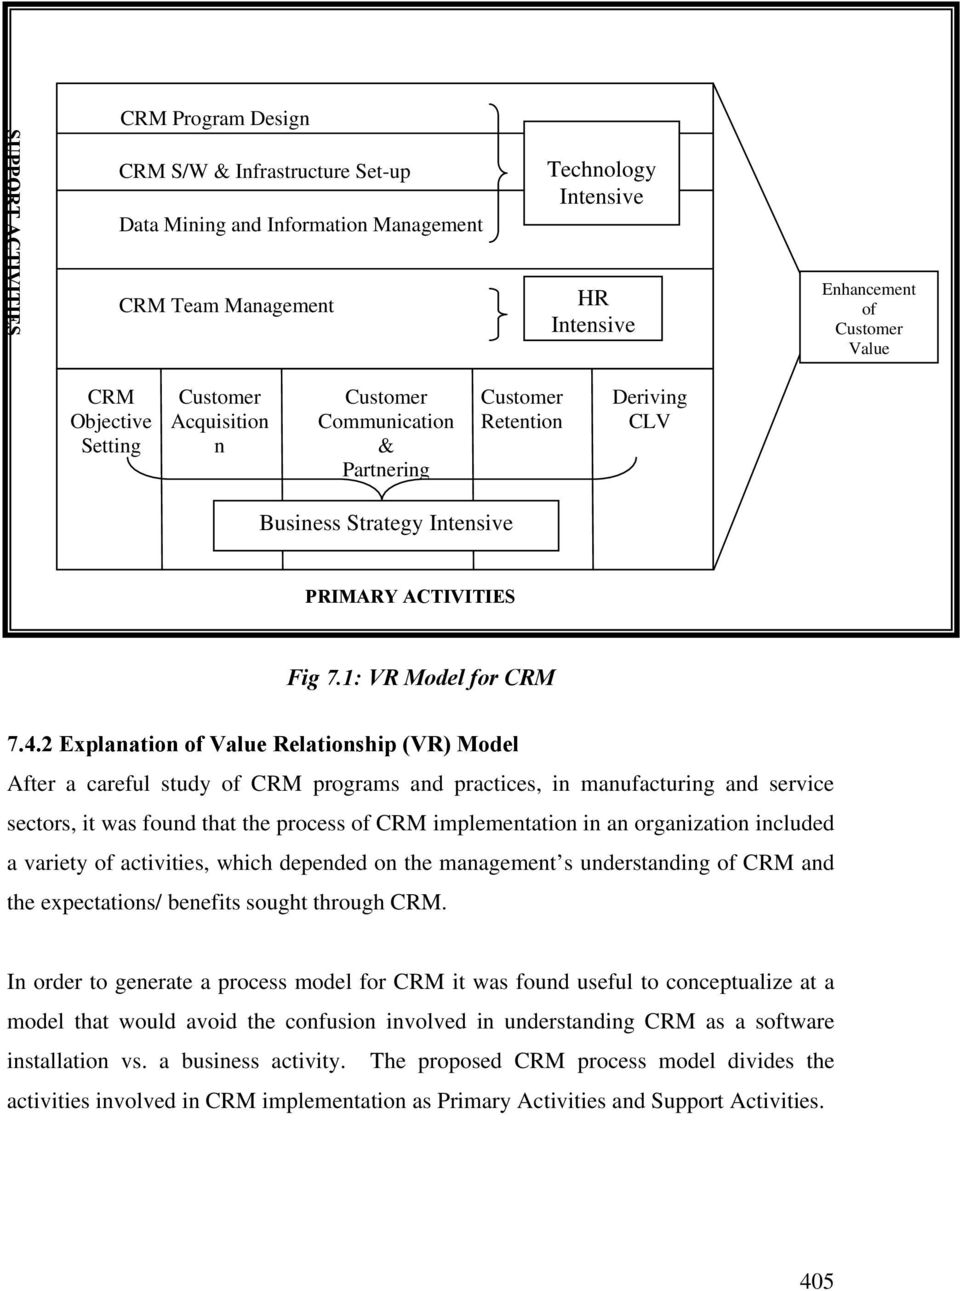 2 Explanation of Value Relationship (VR) Model After a careful study of CRM programs and practices, in manufacturing and service sectors, it was found that the process of CRM implementation in an